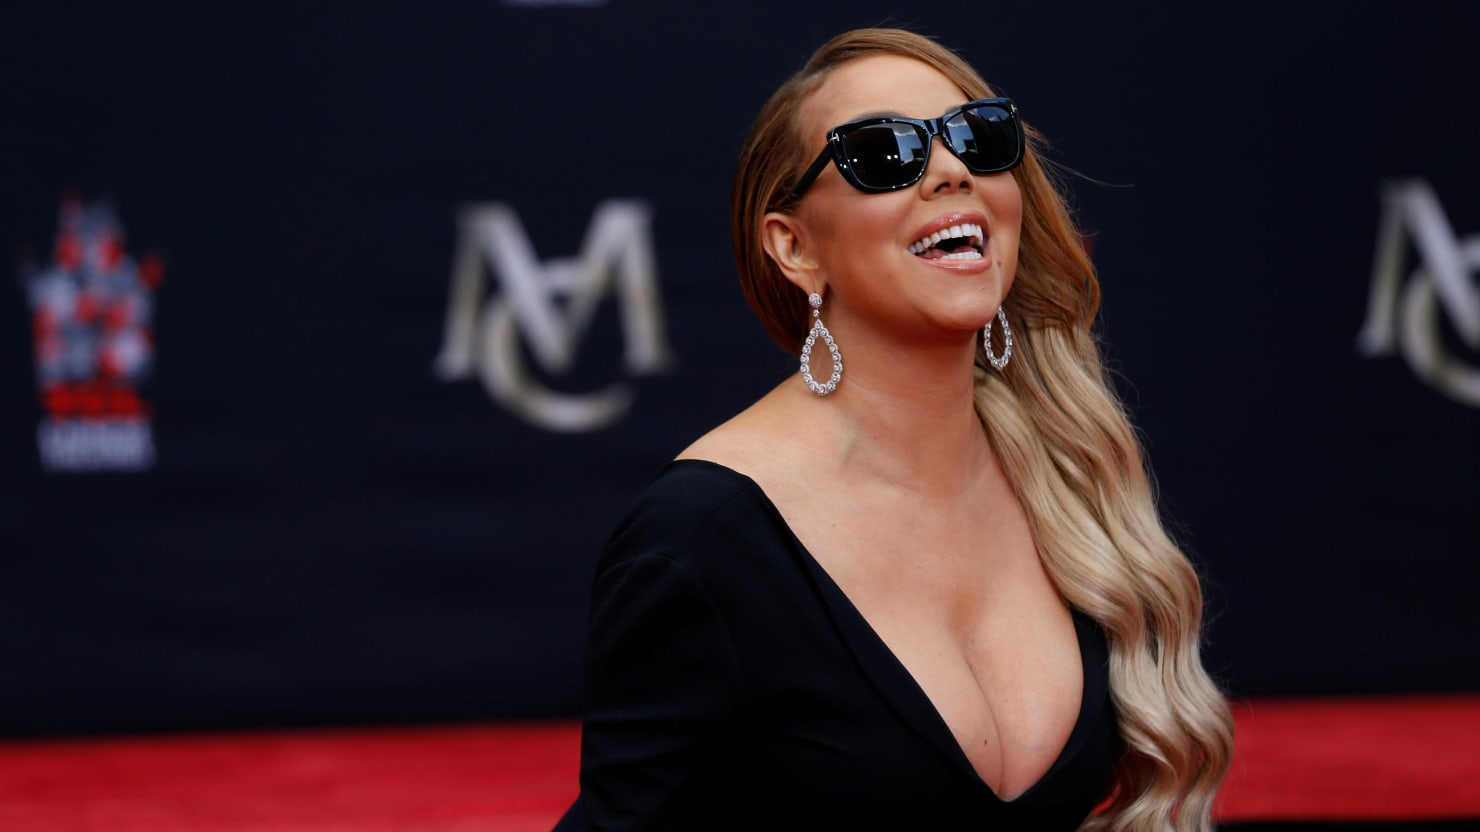 Mariah Carey again accused of sexual harassment 17.04.2018 71